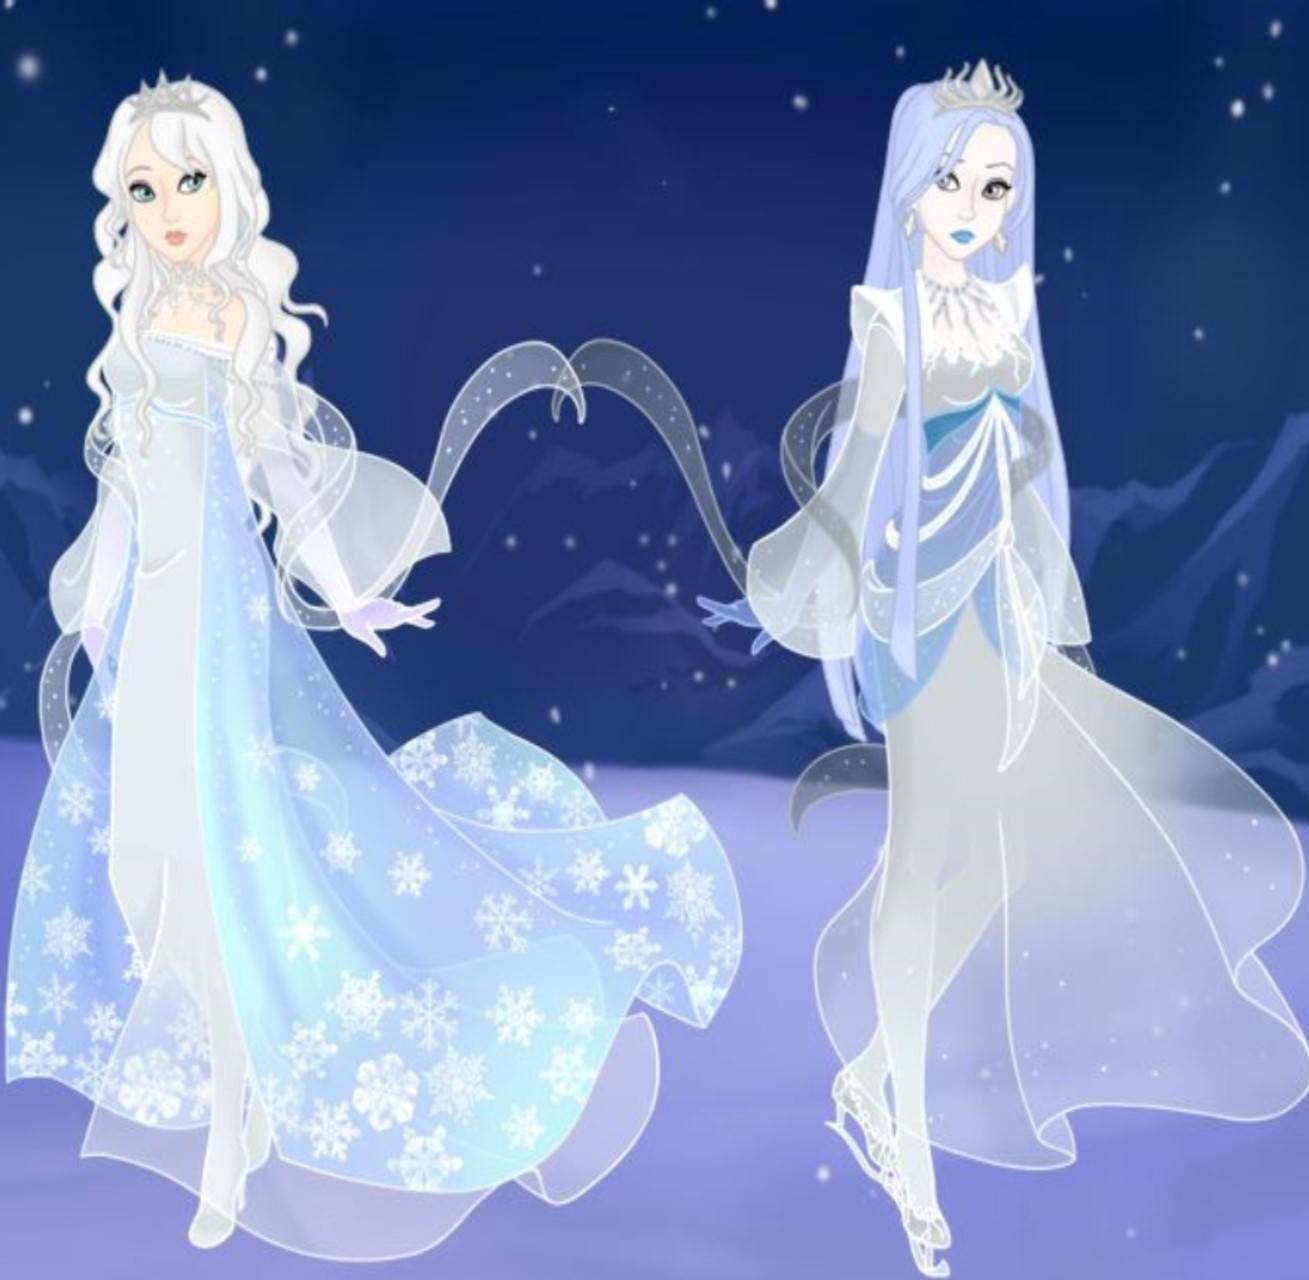 Ms Snow and Lady Ice